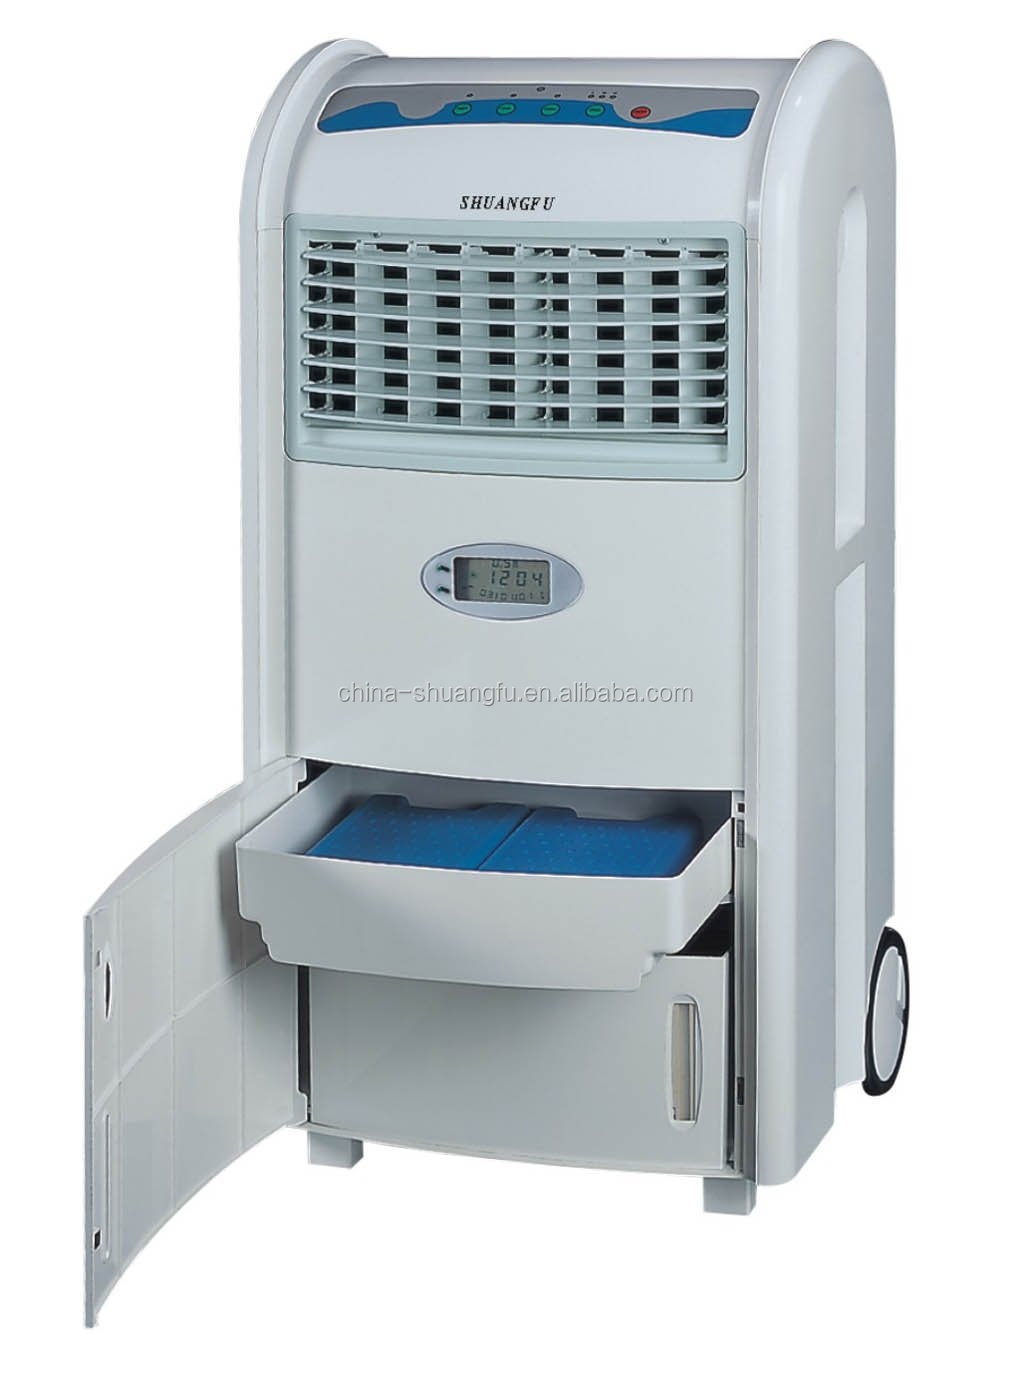 #254C6F Electric Water Evaporative Air Cooler / Portable Water  Best 763 Air Cooler Design photos with 1030x1388 px on helpvideos.info - Air Conditioners, Air Coolers and more